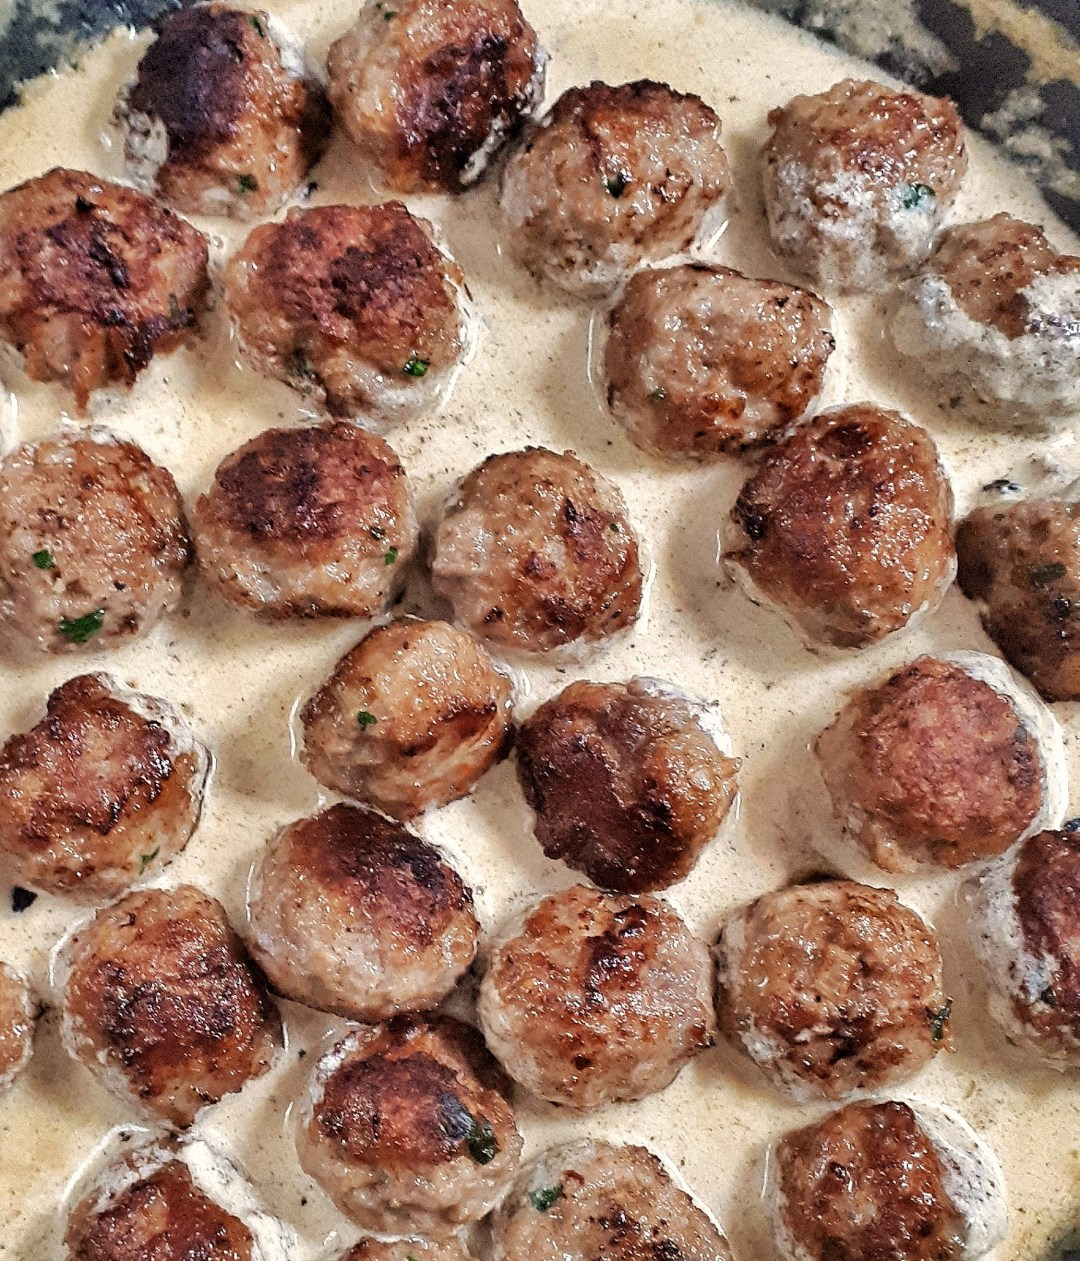 This is the best keto Swedish meatballs recipe. Perfect appetizer or main dish, they are flavorful and have the most amazing creamy gravy sauce.